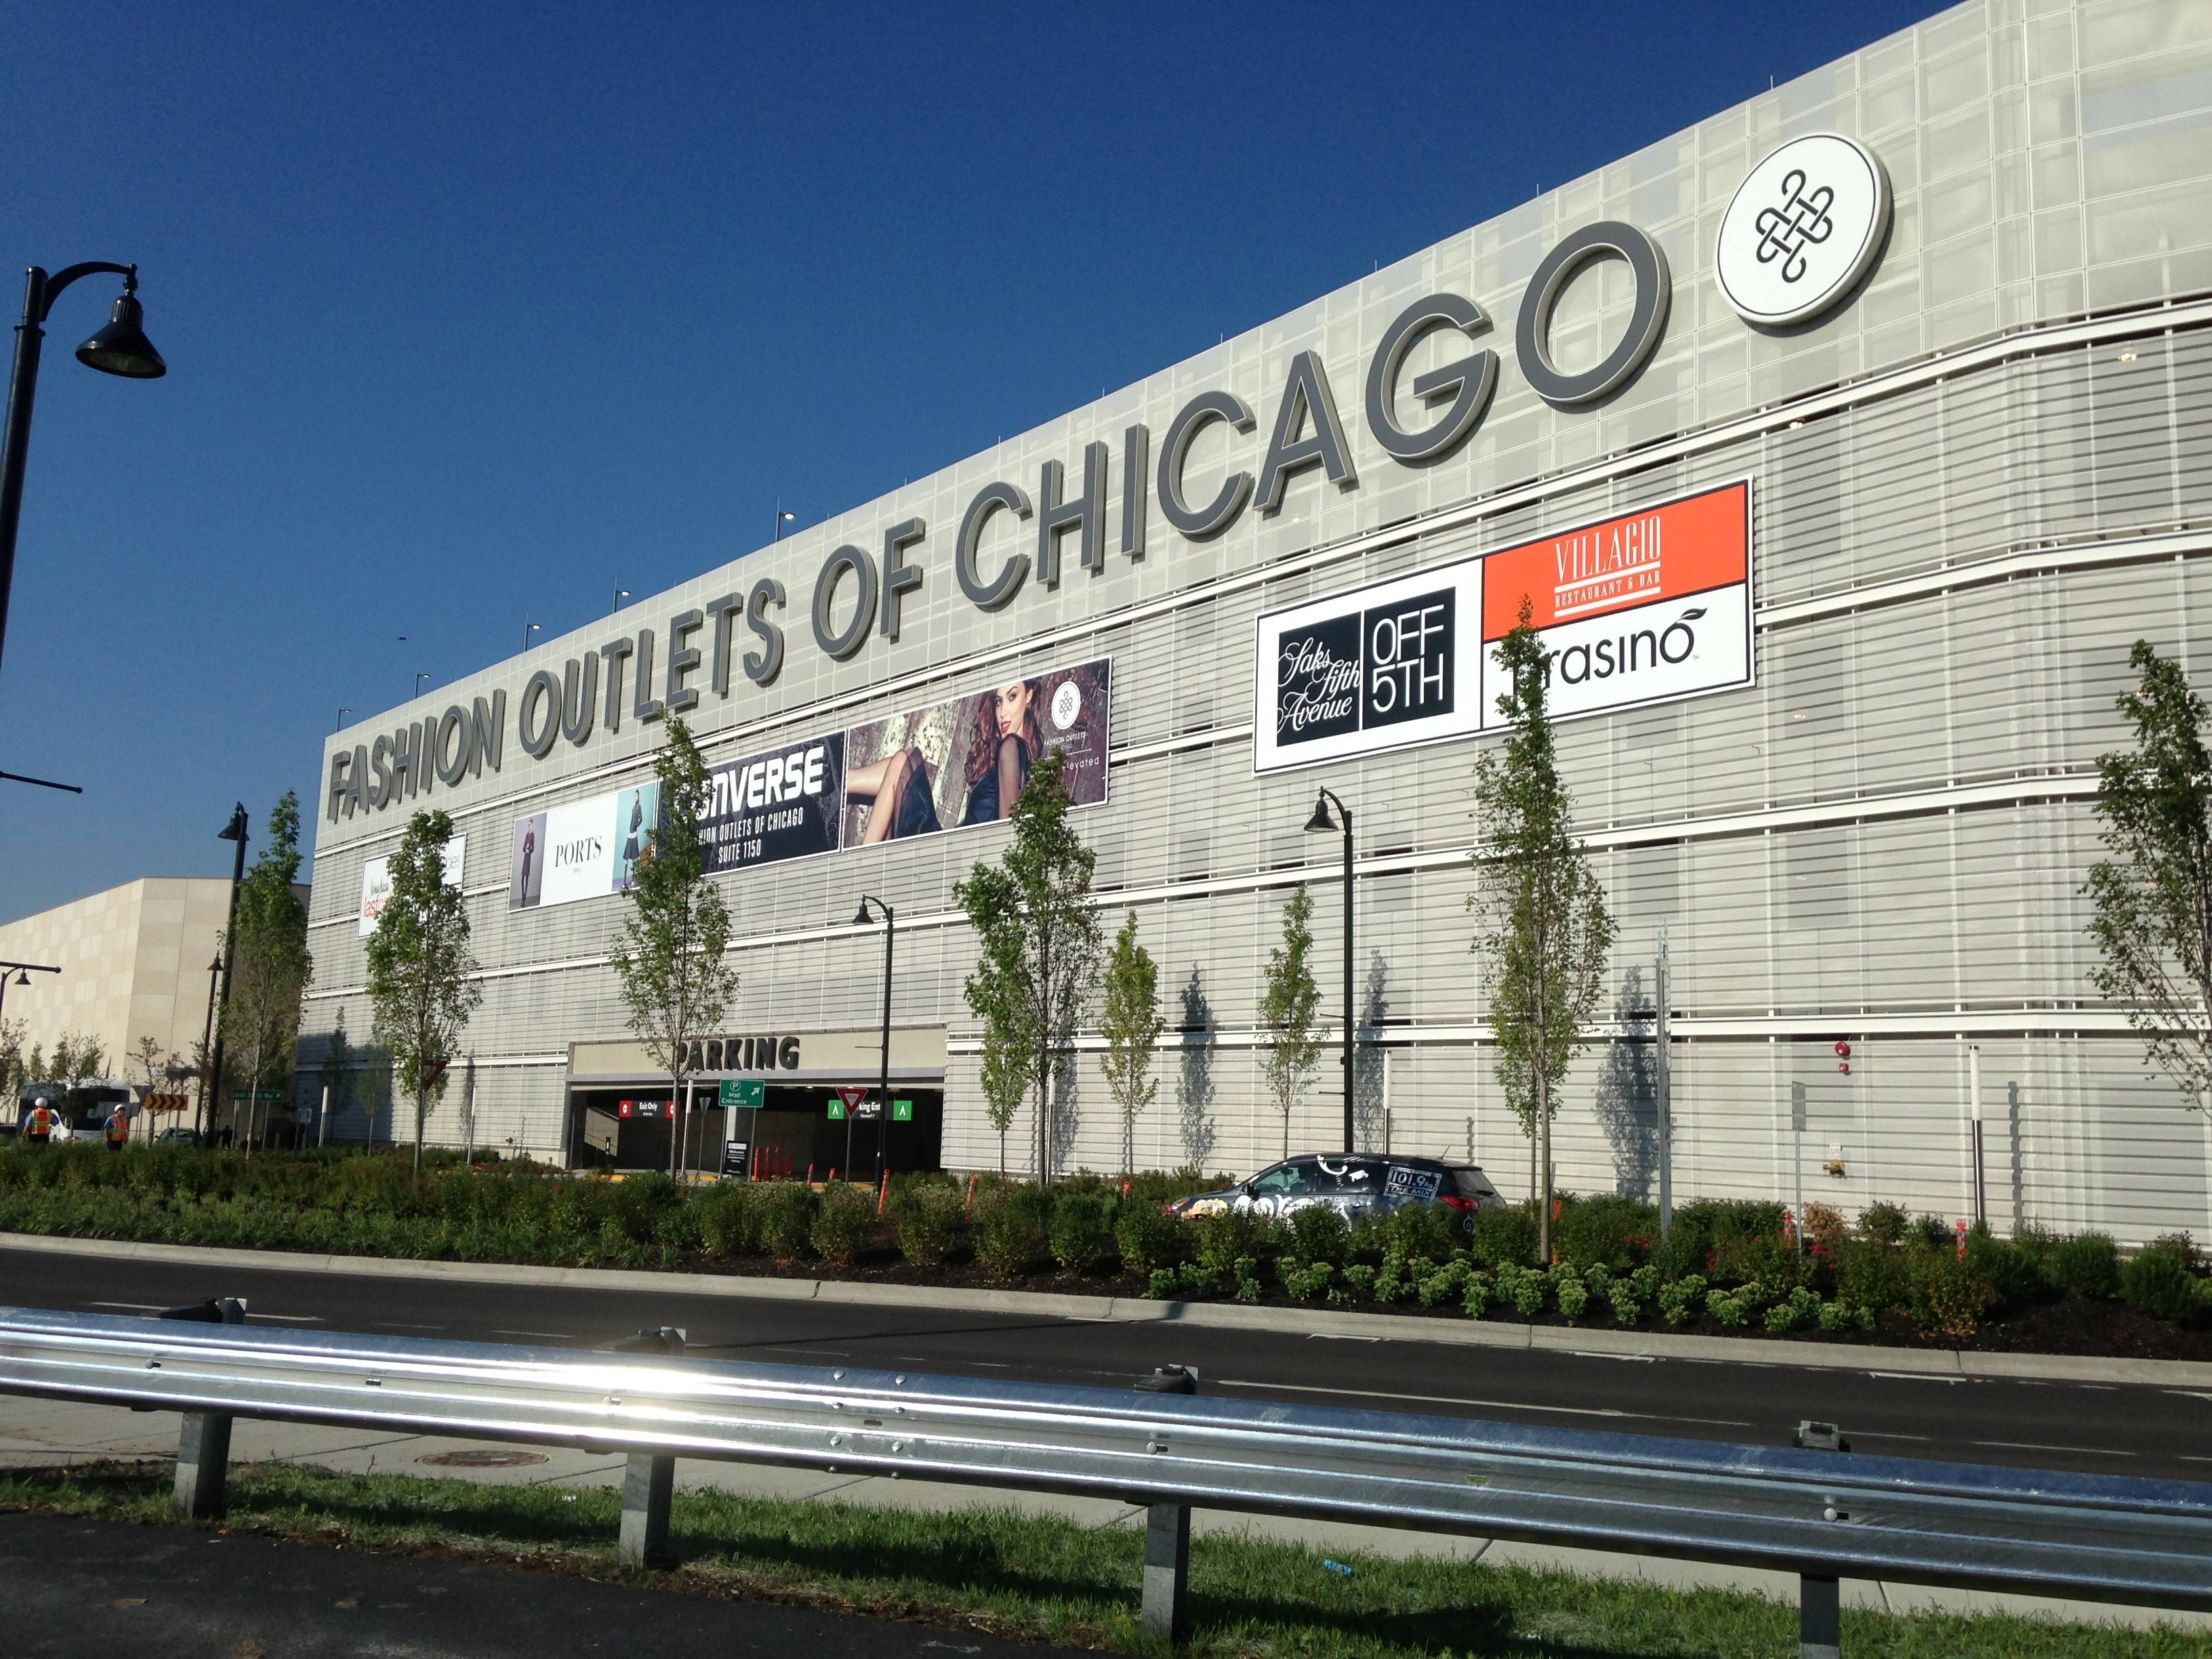 Fashion Outlets of Chicago Home 62